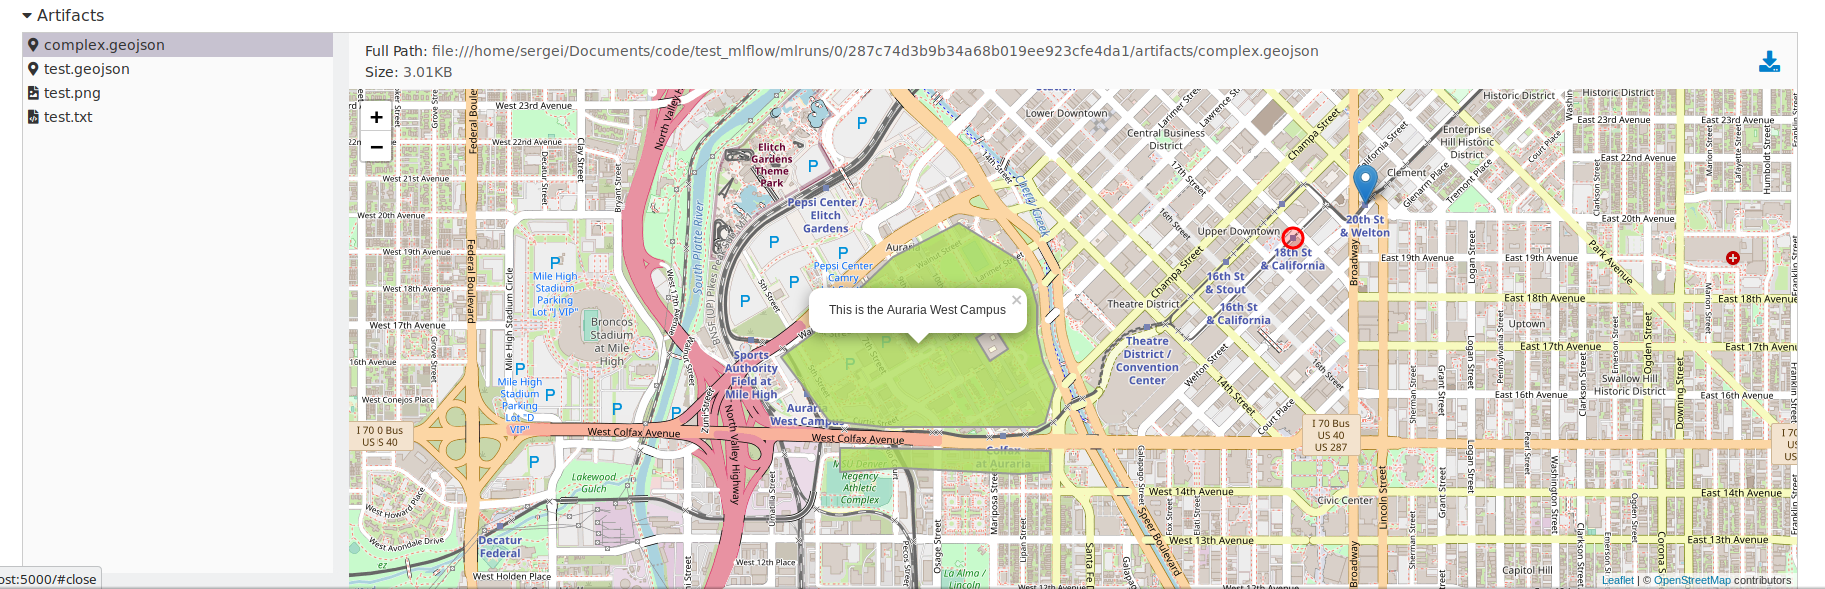 Show geojson files on leaflet map · Issue #1803 · mlflow